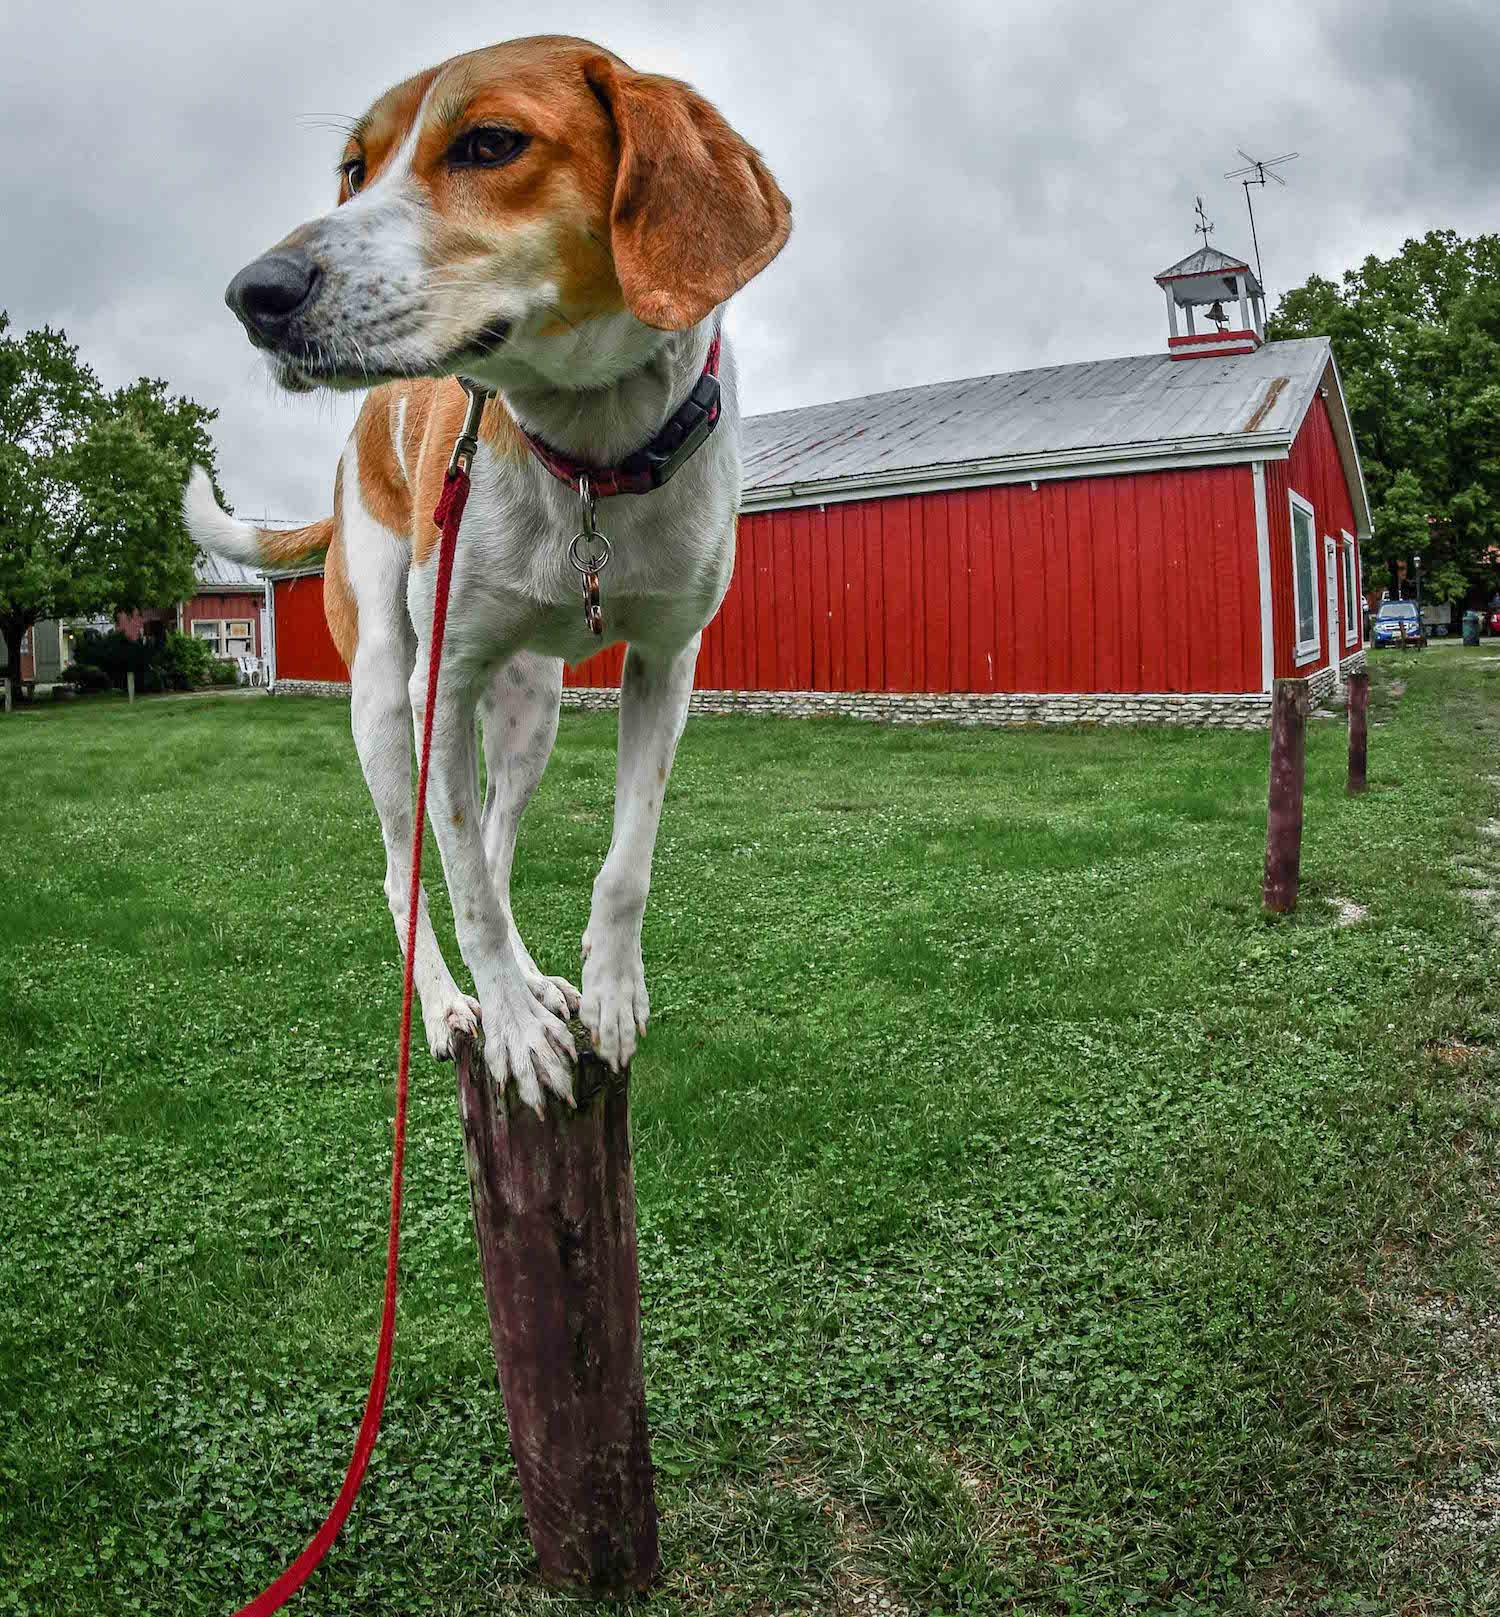 LOCATION: Metamora, Indiana / Mollie is a local Instagram celebrity. Famous for posing on fire hydrants in front of ArtWorks murals (and other Cincy landmarks), this hound dog has officially stolen our hearts. You can follow her adventures on Instagram @molliethehounddoggie / Image: Patti Mossey (Mollie's owner and #1 fan) // Published: 5.1.18